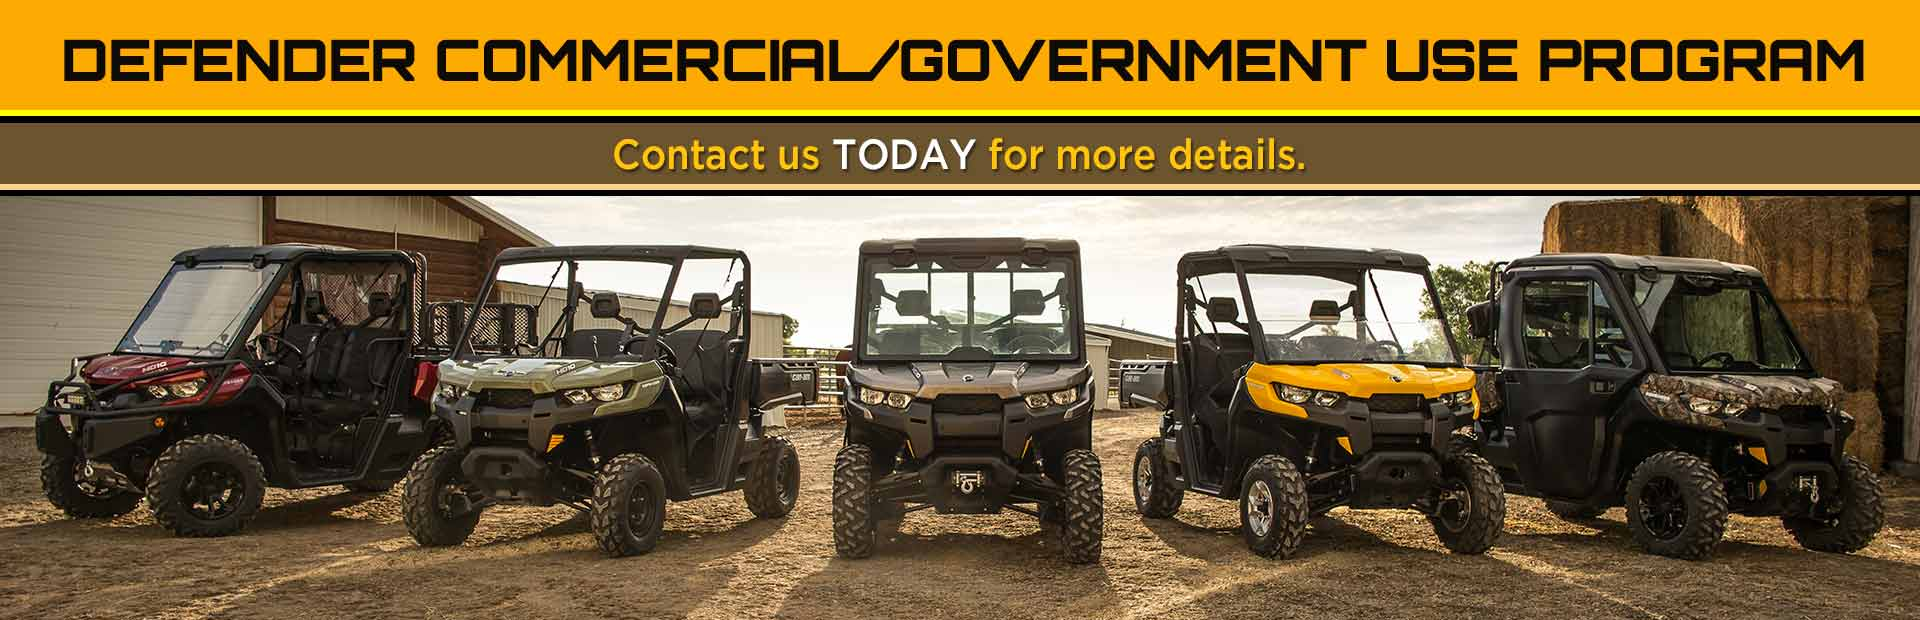 Can-Am Defender Commercial/Government Use Program: Contact us today for more details.